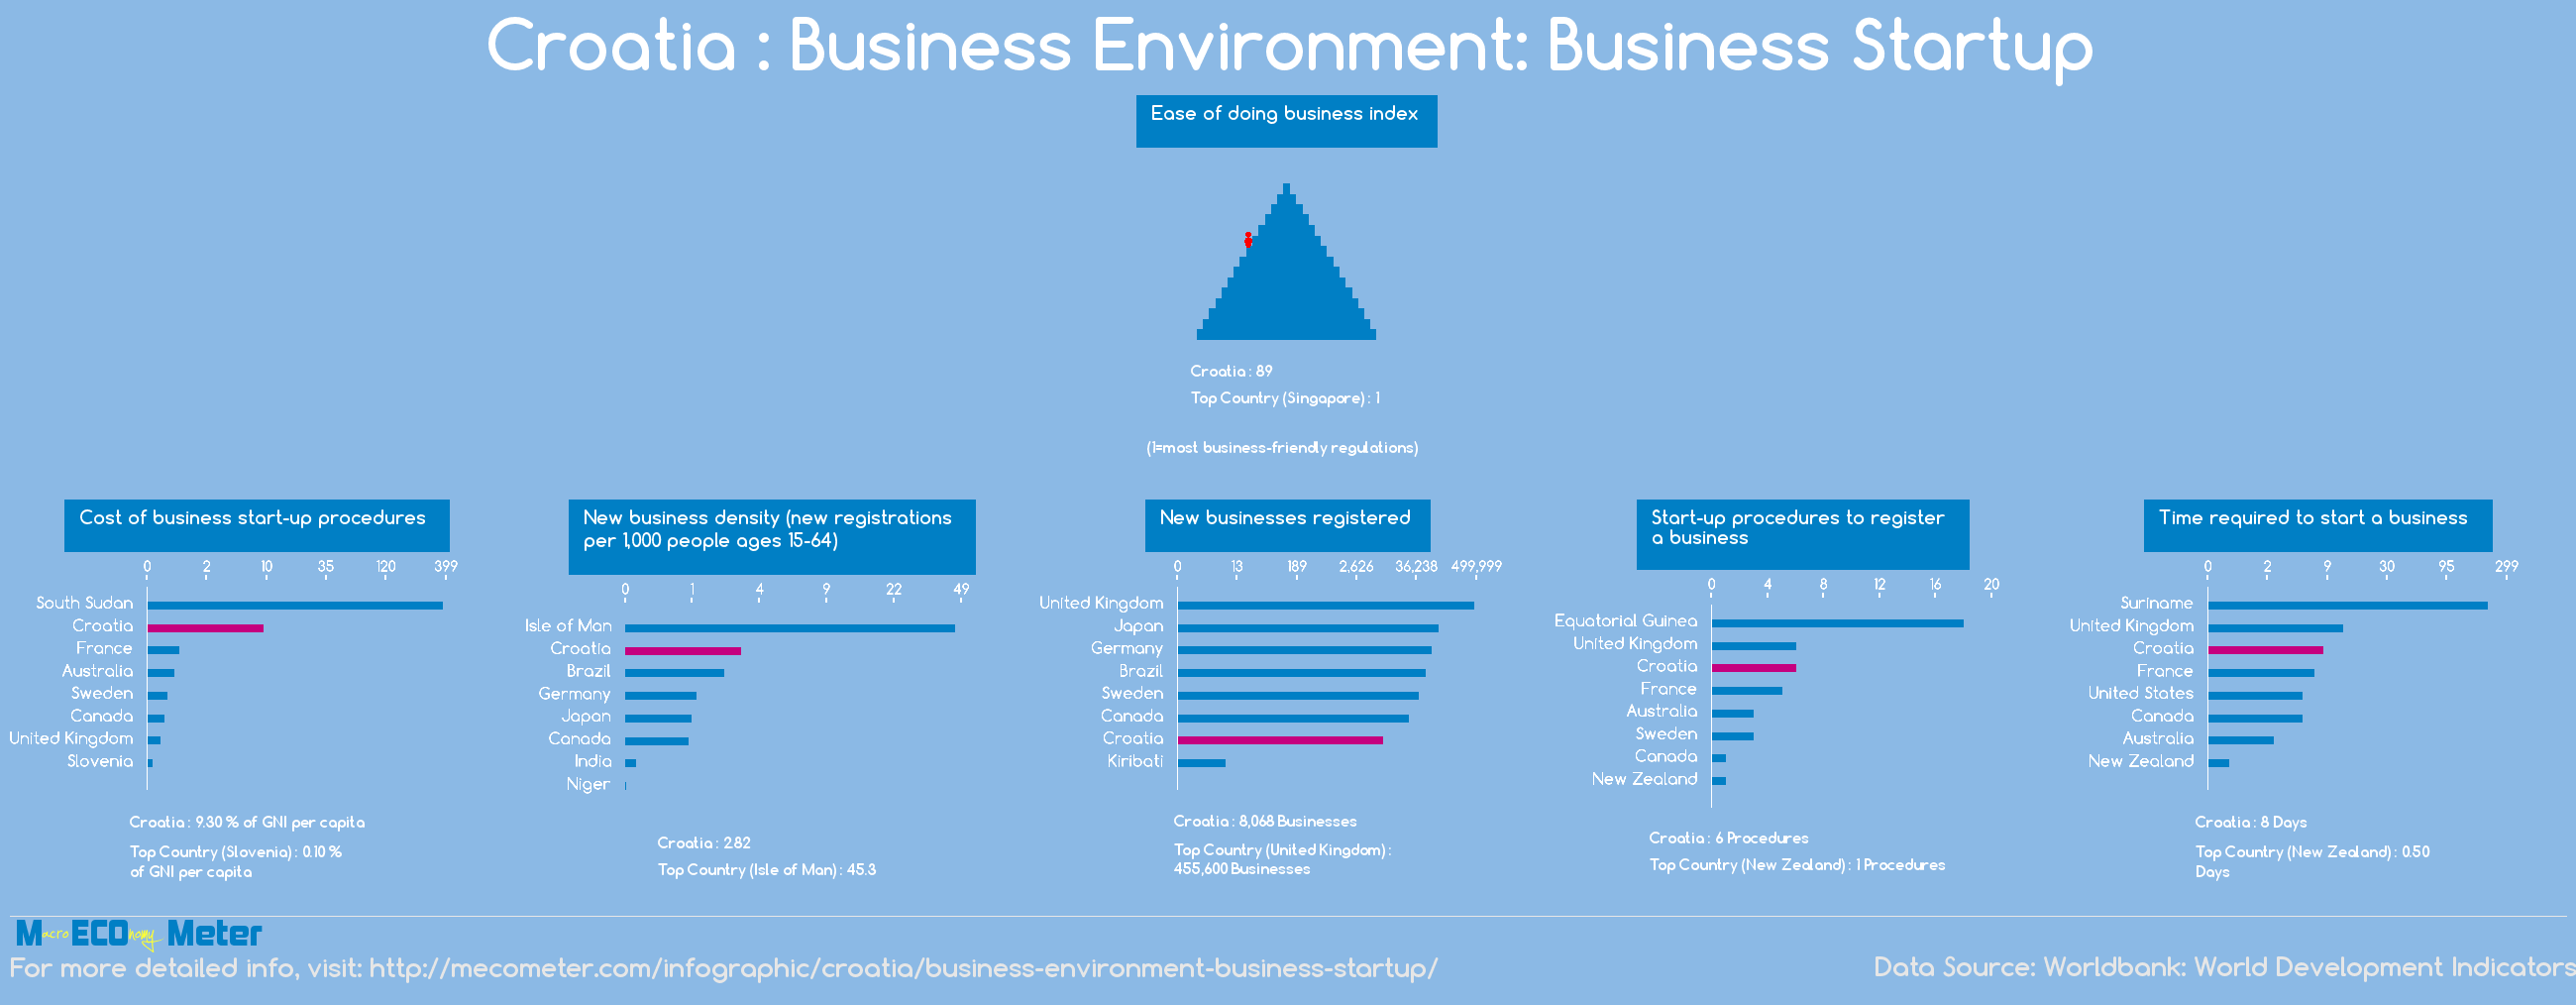 Croatia : Business Environment: Business Startup